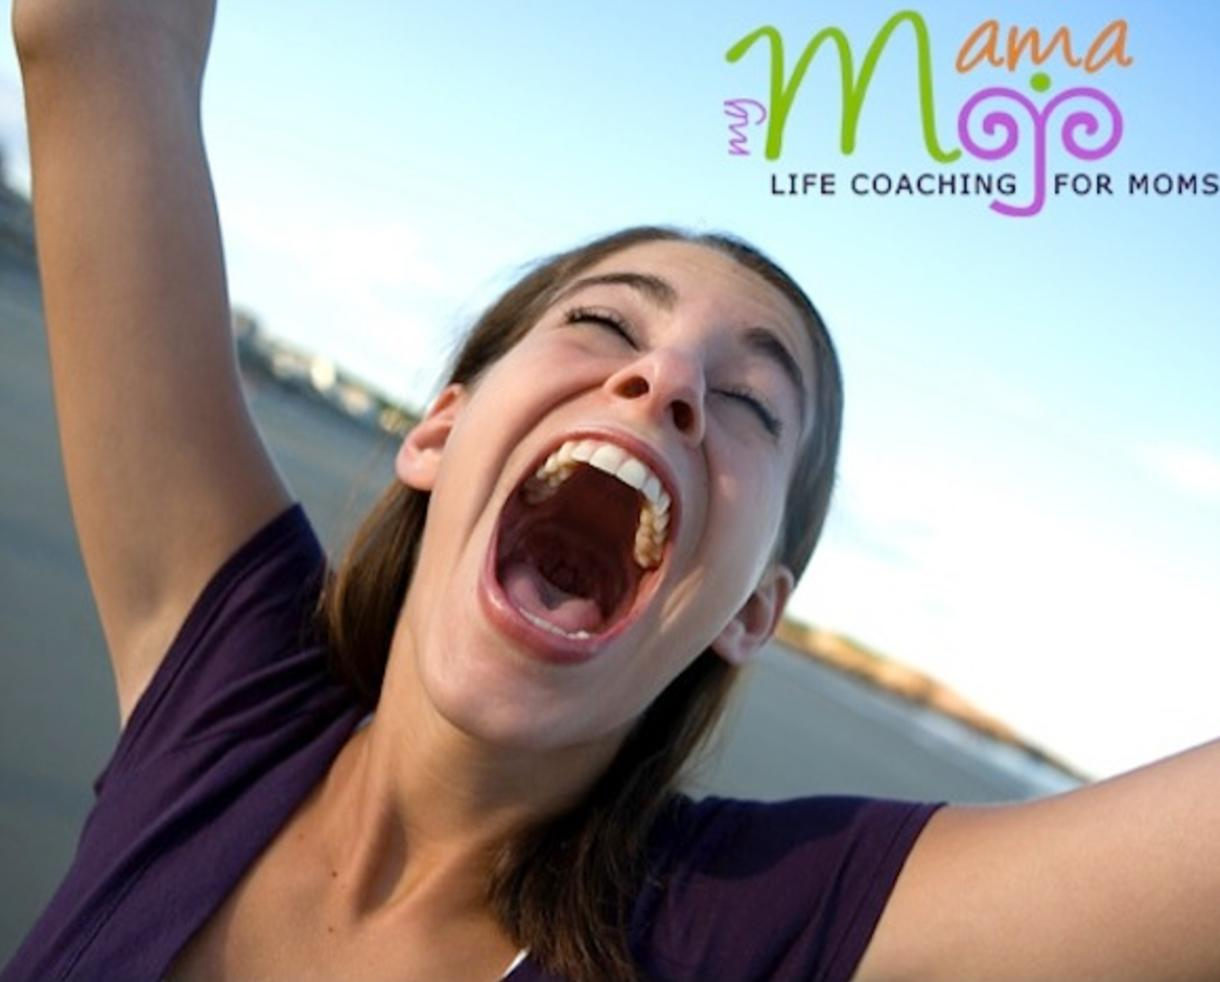 $49 for Two 30-Minute Mom Life Coaching Sessions and E-Guide (51% off)